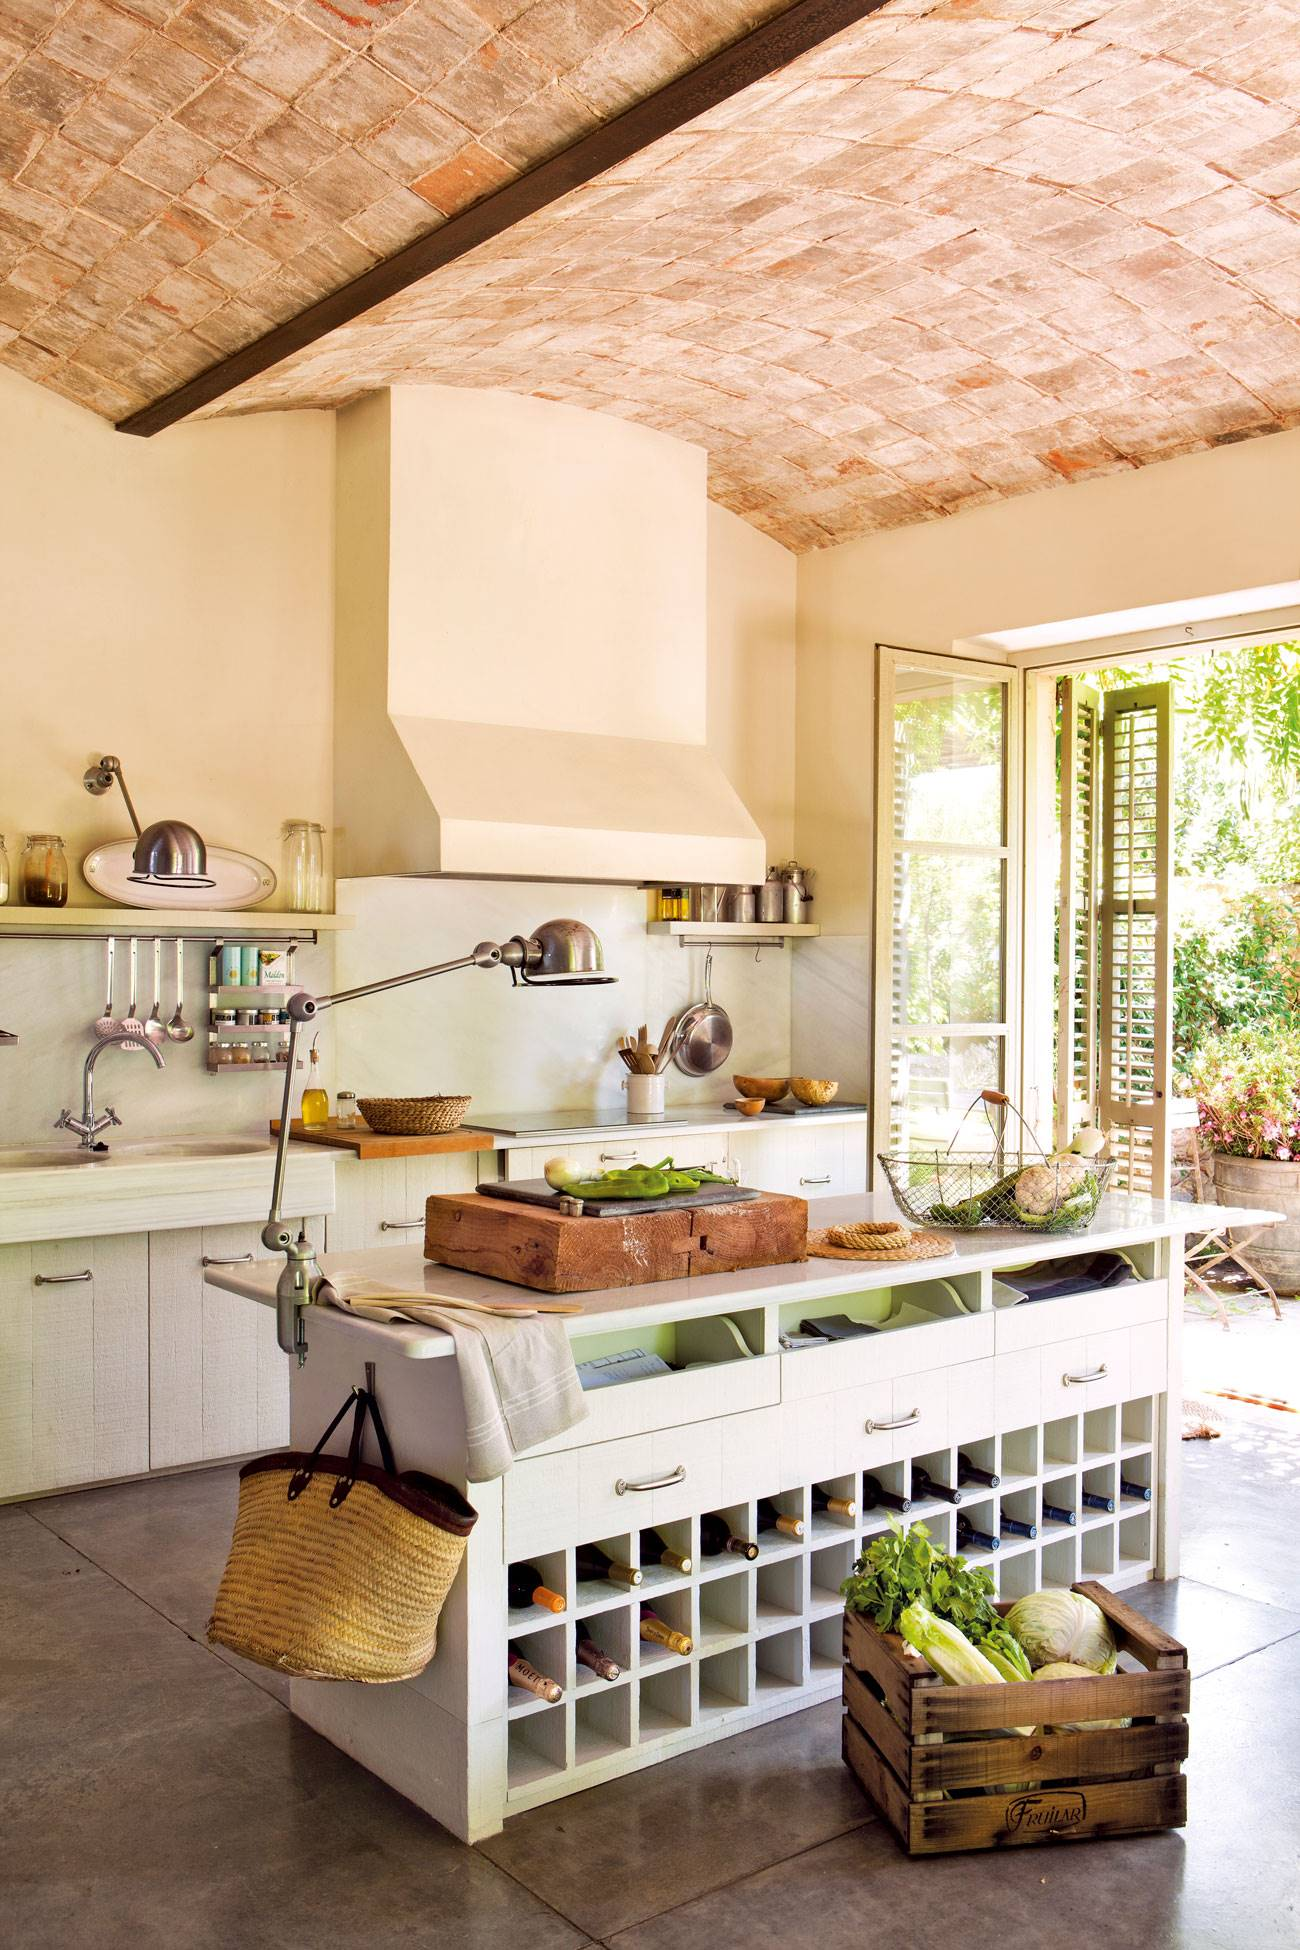 kitchen-ceiling-stone-vaults-and-island 389690. Multifunctional furniture